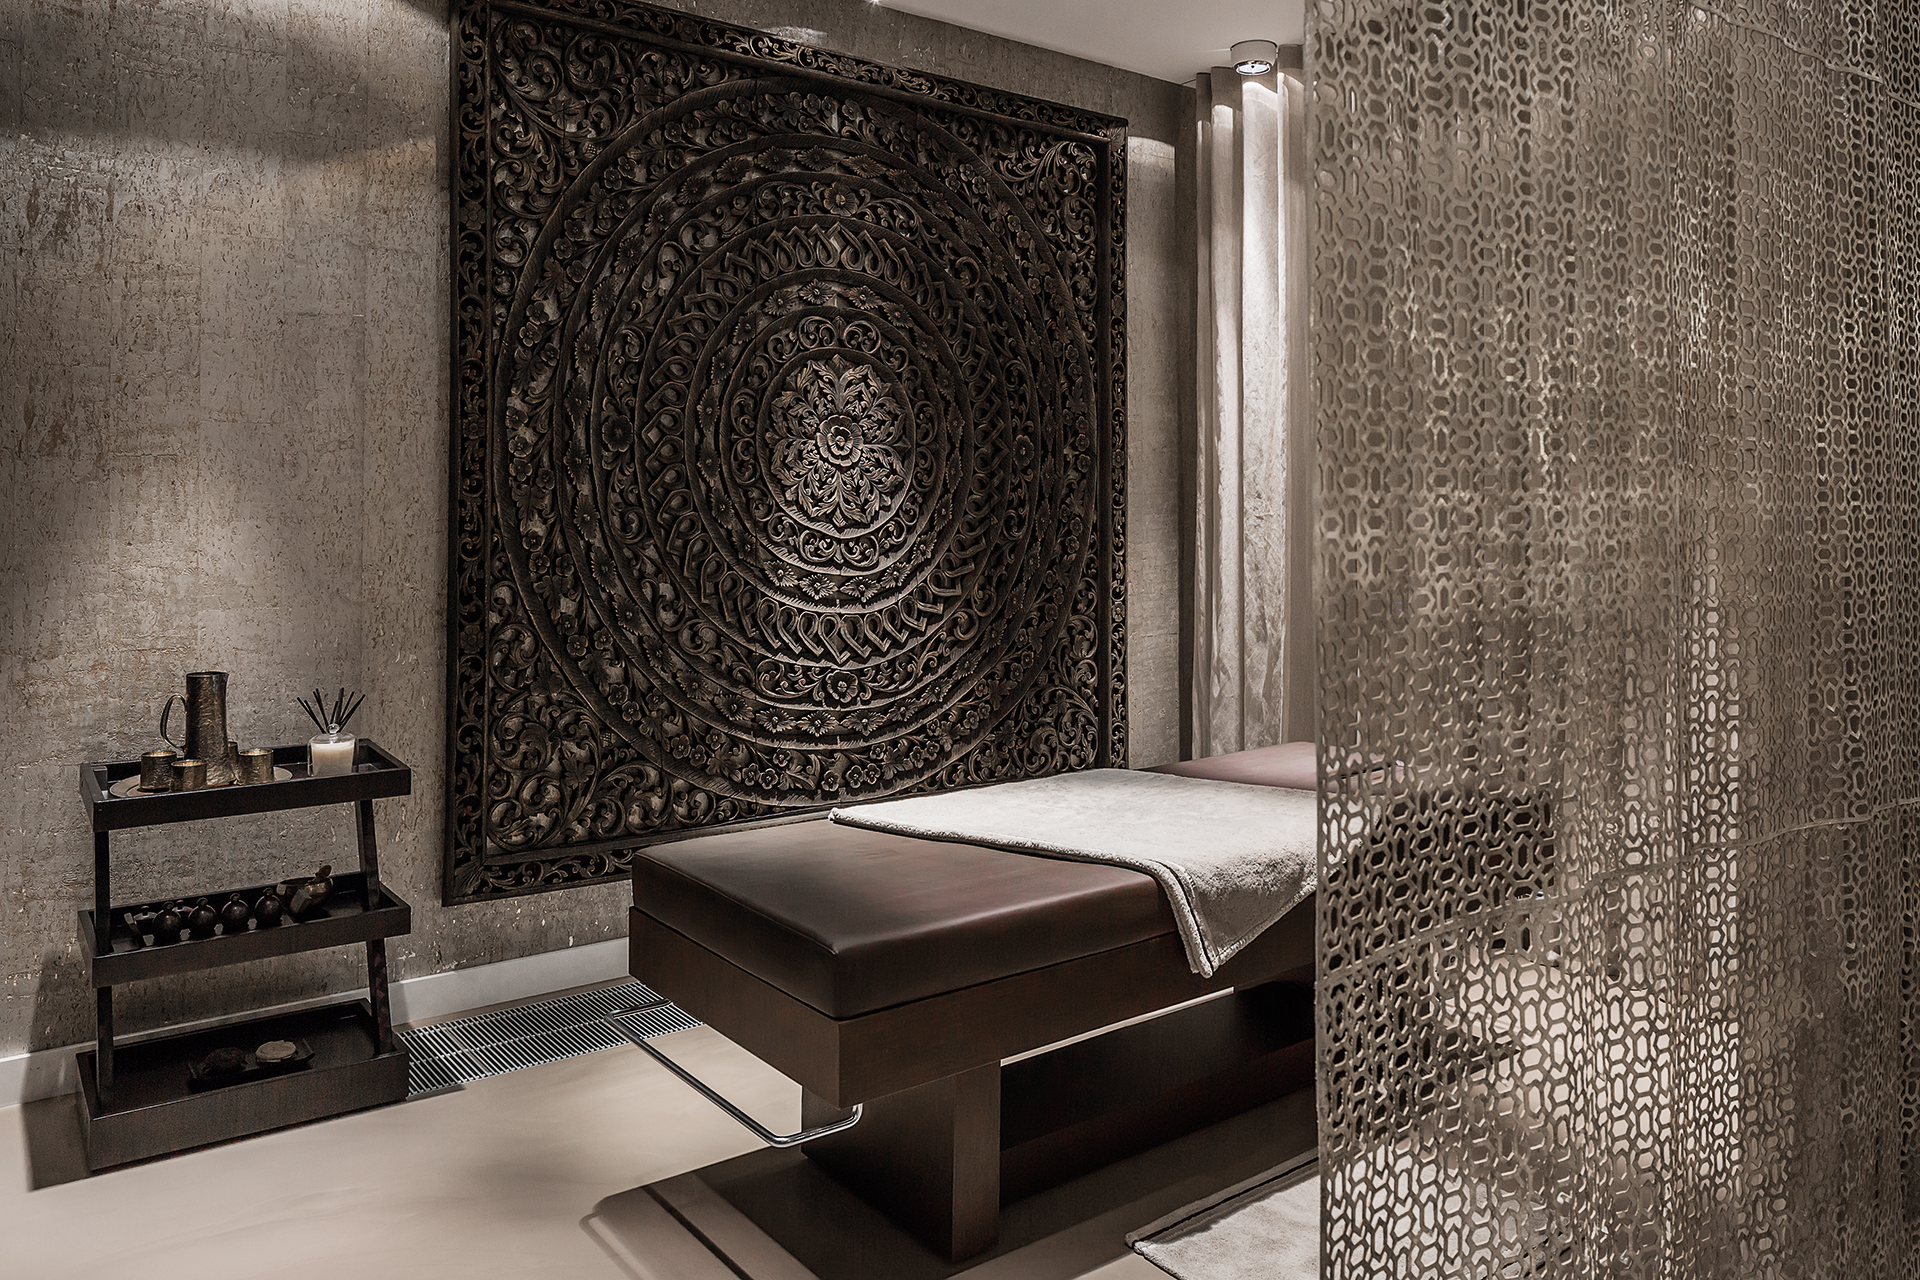 Massage parlor with grate separator and beautiful Indian style wall decoration